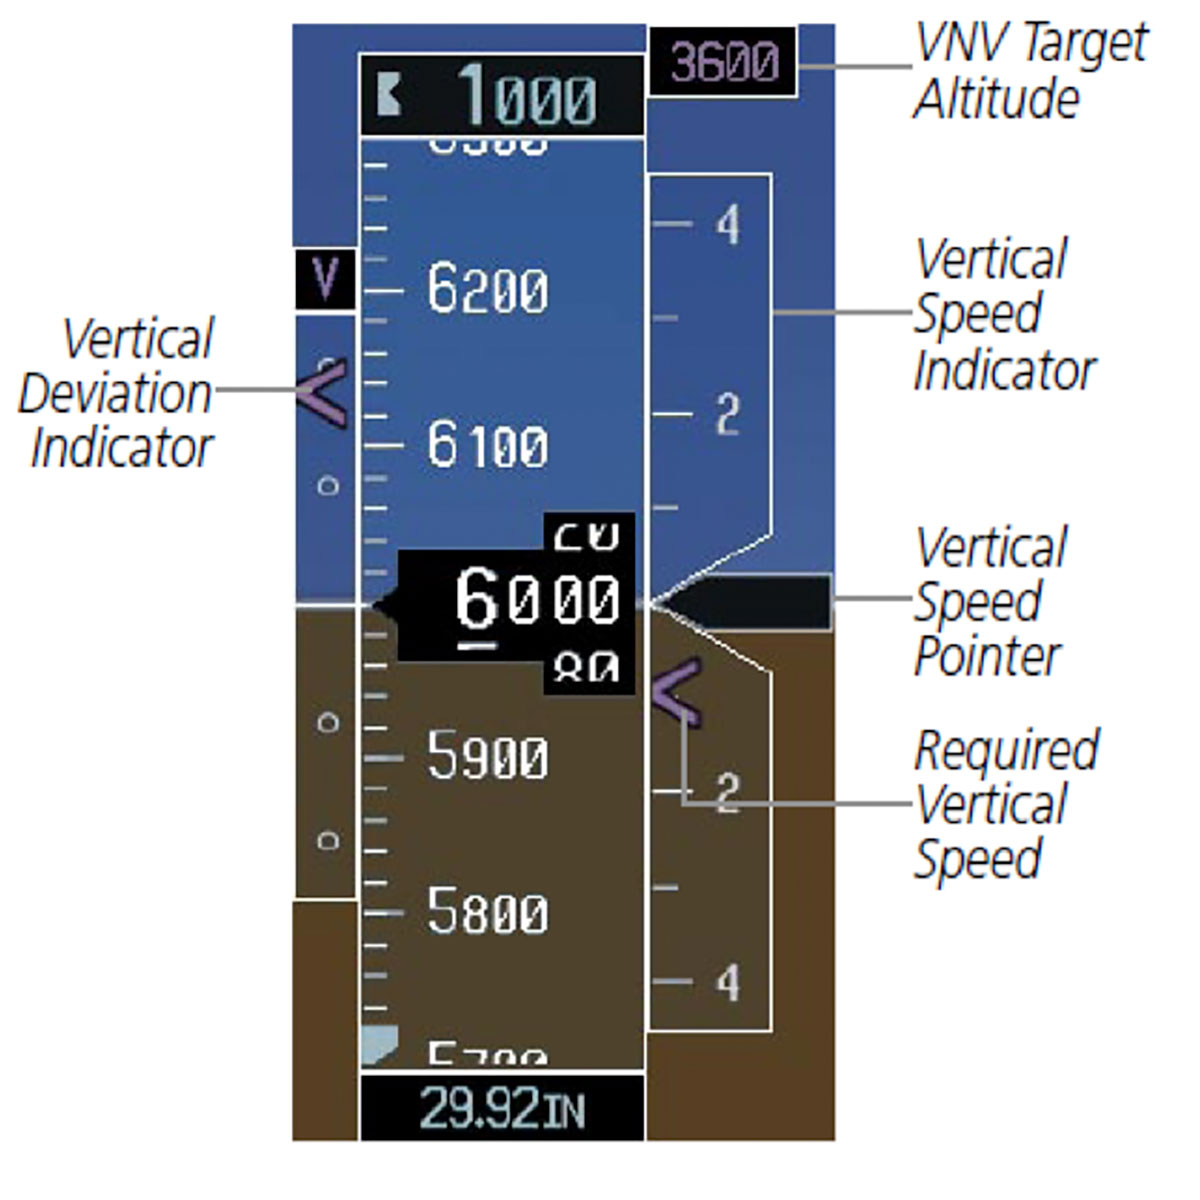 G1000 Descent Planning // VNAV // Vertical Navigation | High